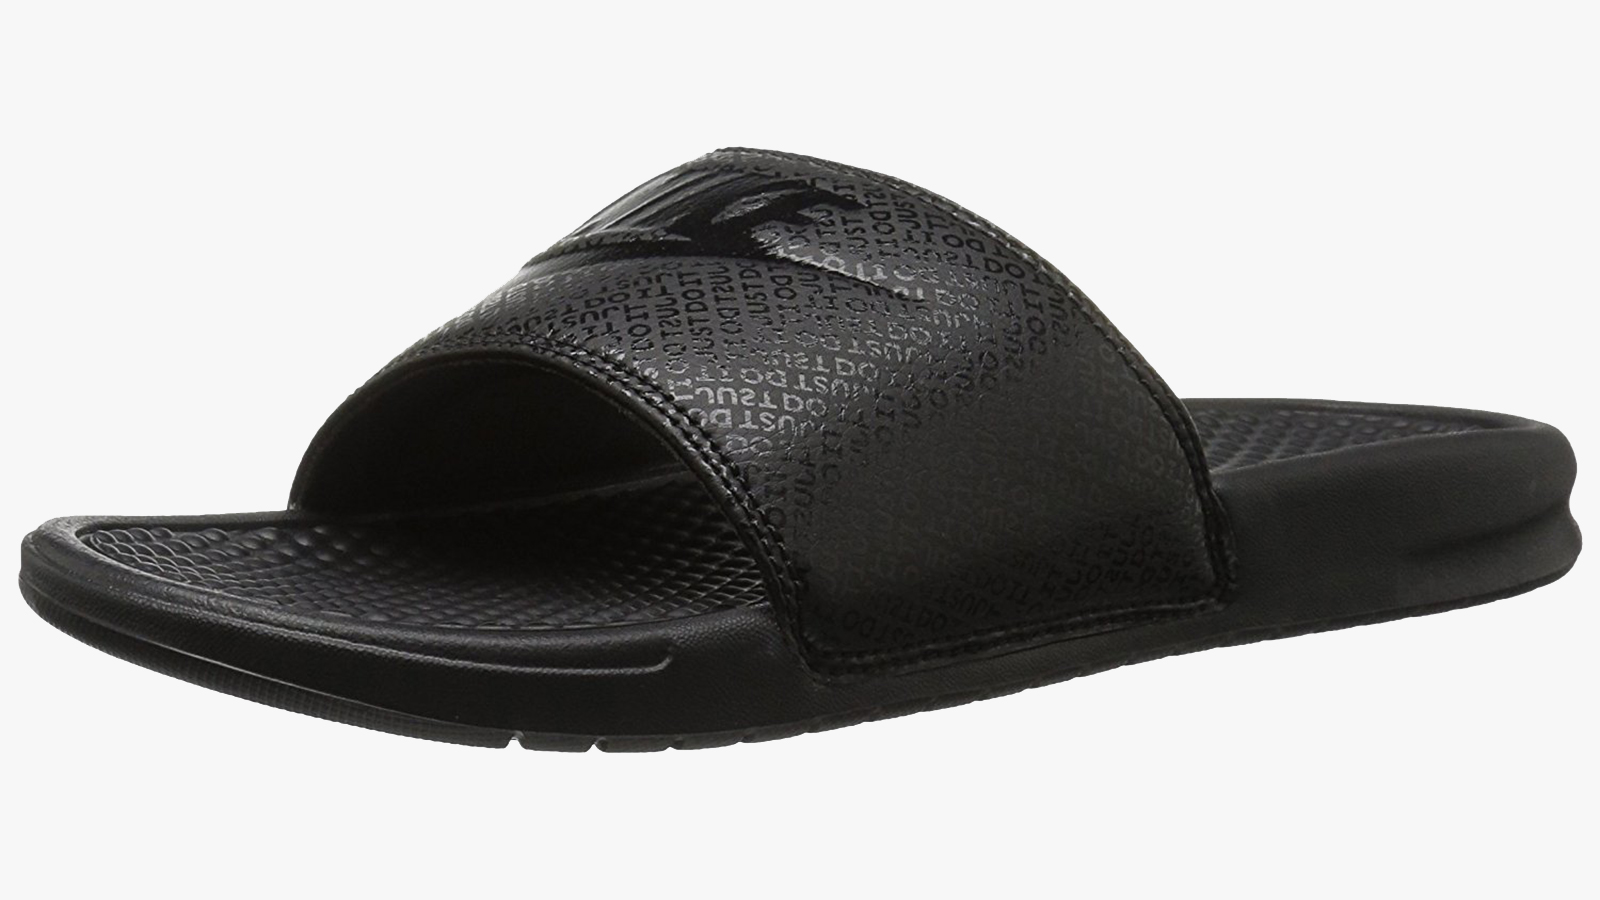 Nike Benassi Best Men's Slides